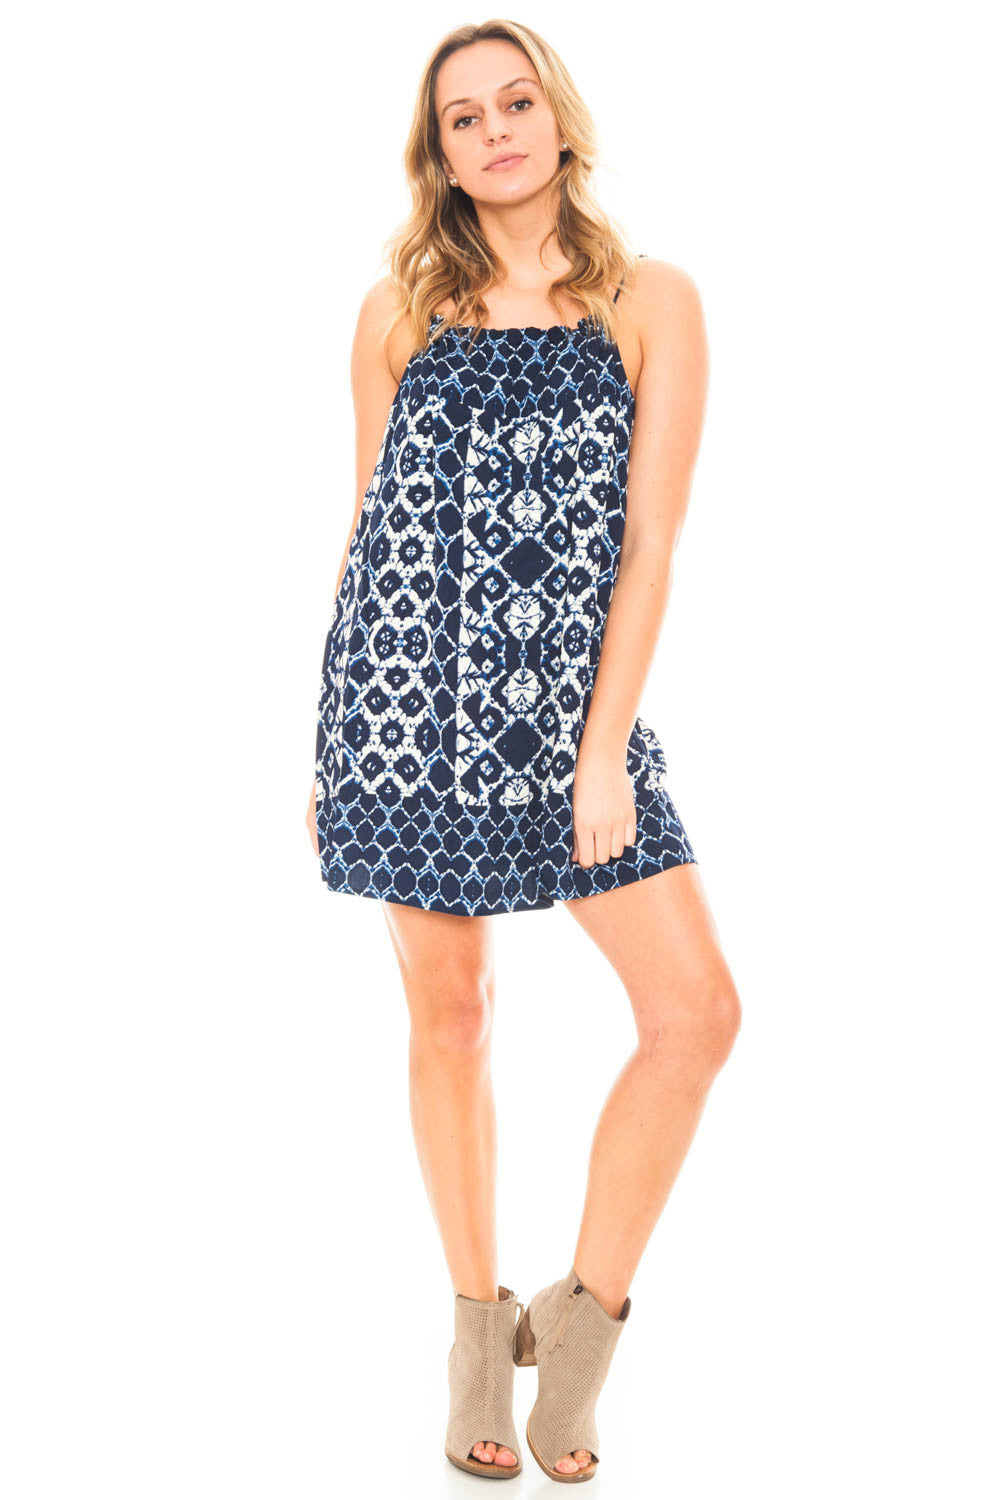 Dress - Lyndon by BB Dakota Printed Dress